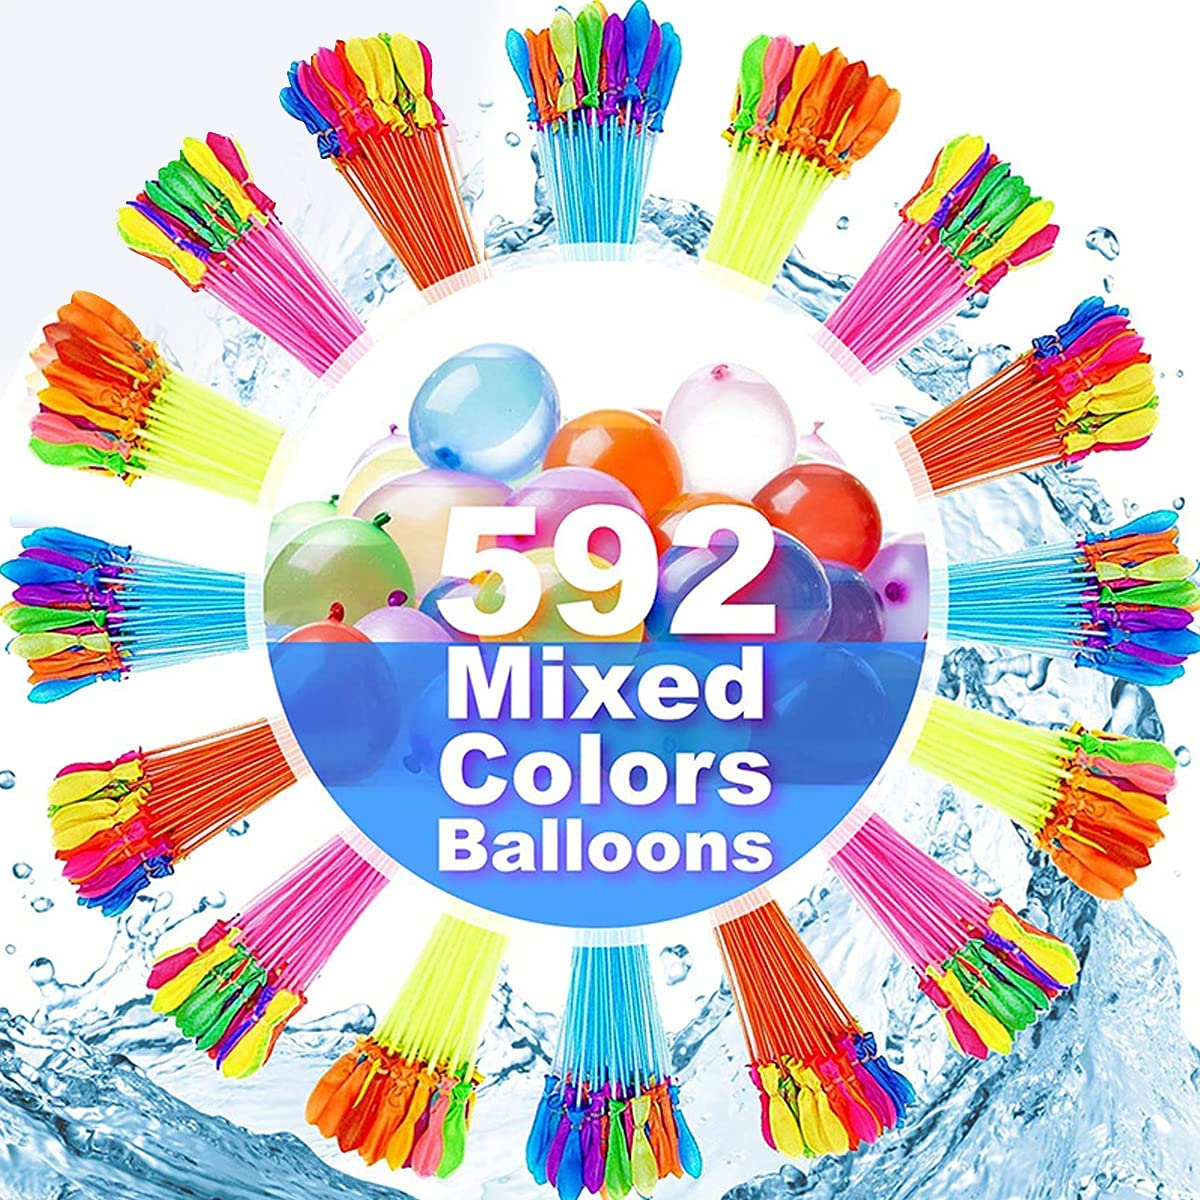 Water Balloons Albuquerque Mall 592 pcs Columbus Mall of Instant Bunch